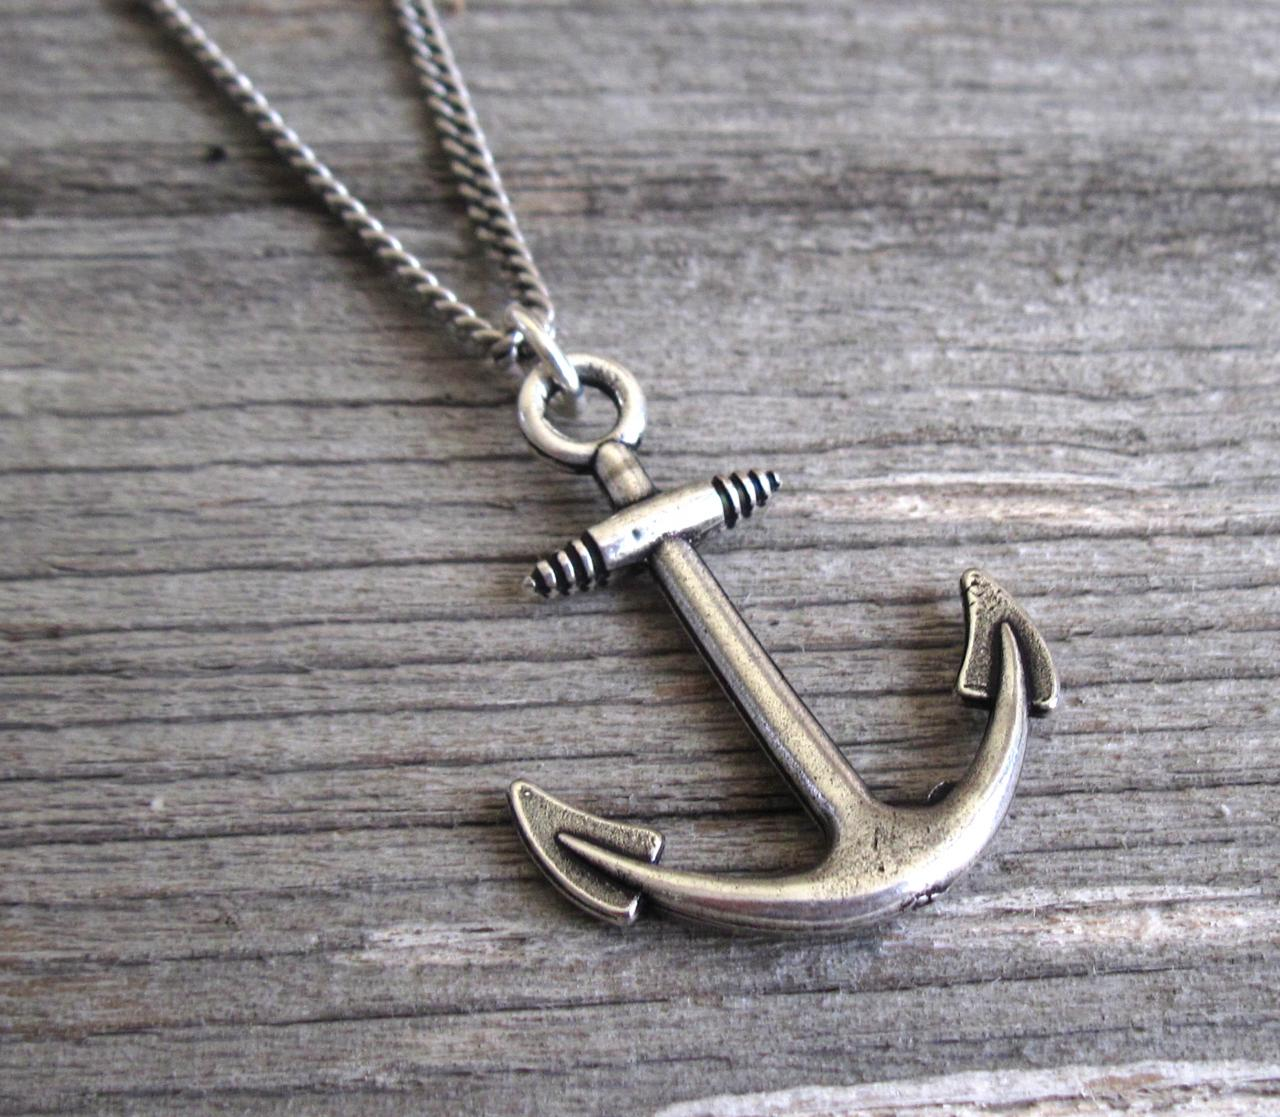 Men's Necklace - Men's Anchor Necklace - Men's Silver Necklace - Mens Jewelry - Necklaces For Men - Jewelry For Men - Gift for Him